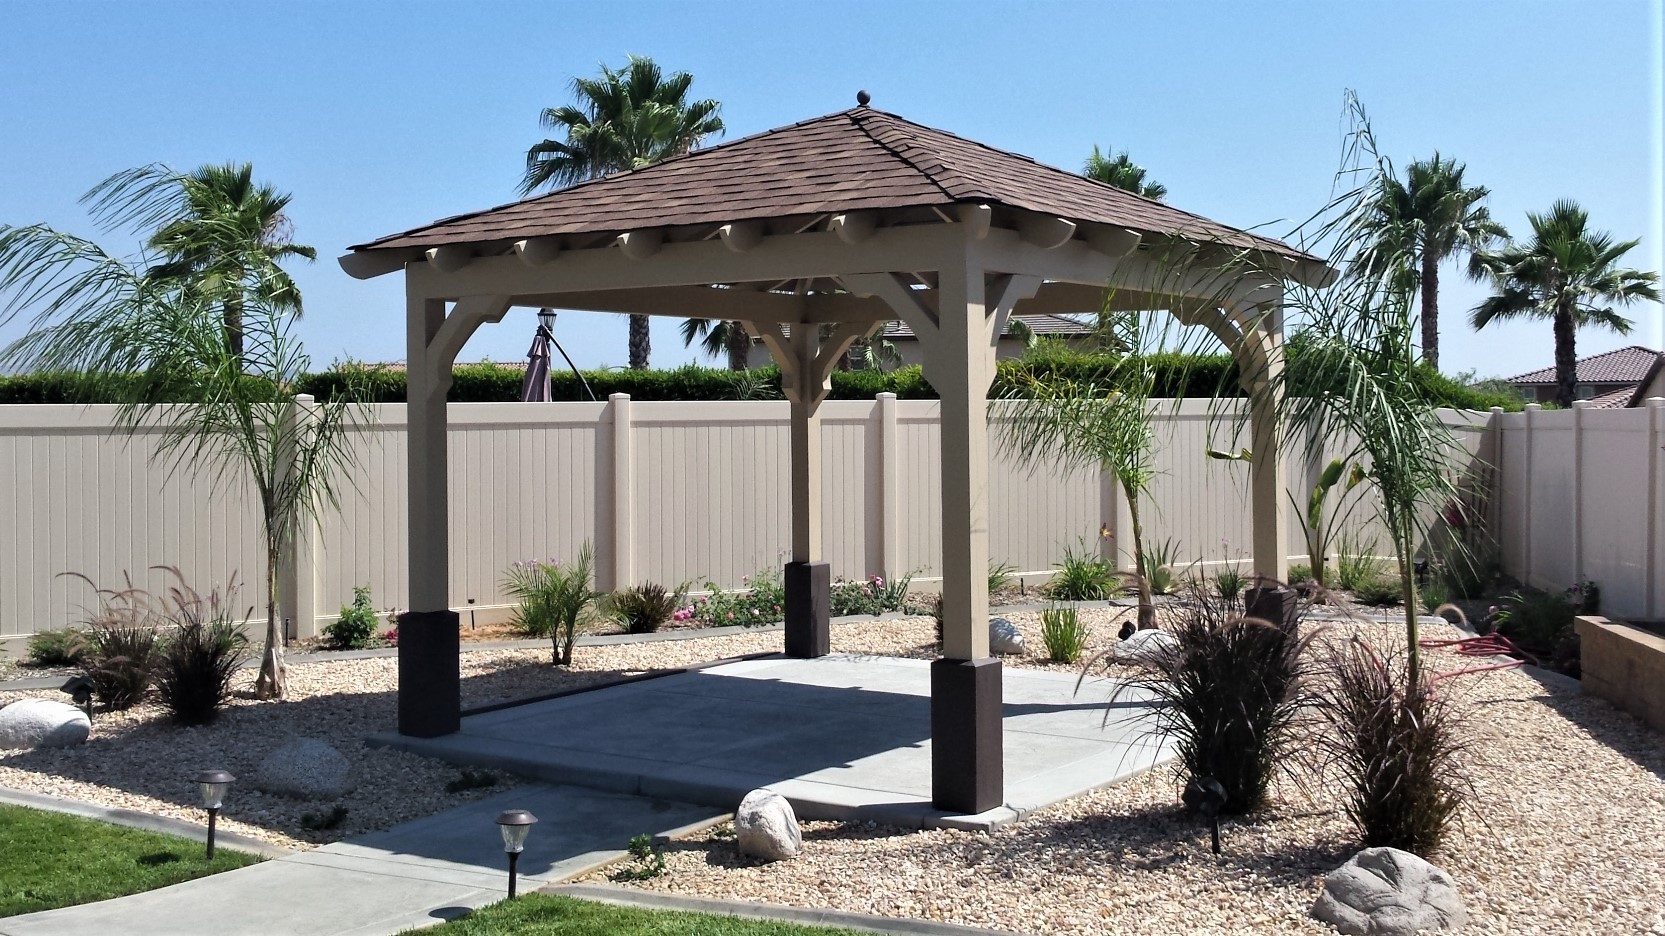 California Gazebos Plus Unique Outdoor Daybeds Pergolas Covers